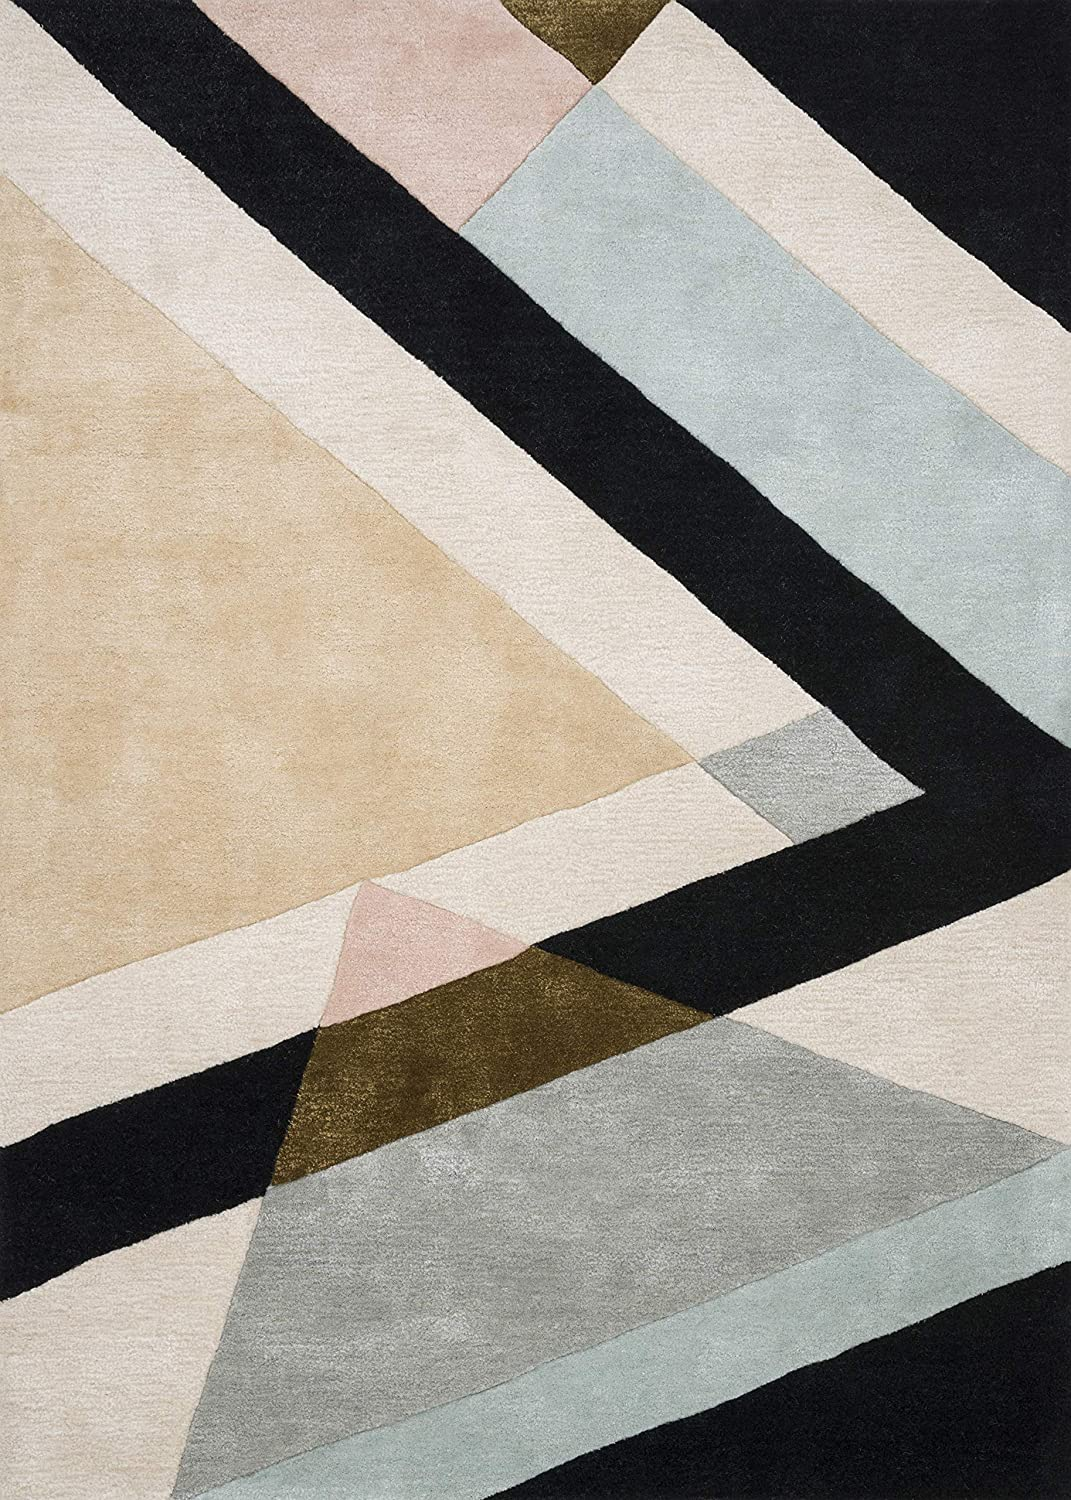 Now House by Jonathan Adler Milan Collection Area Rug, 5' x 7', Multicolored